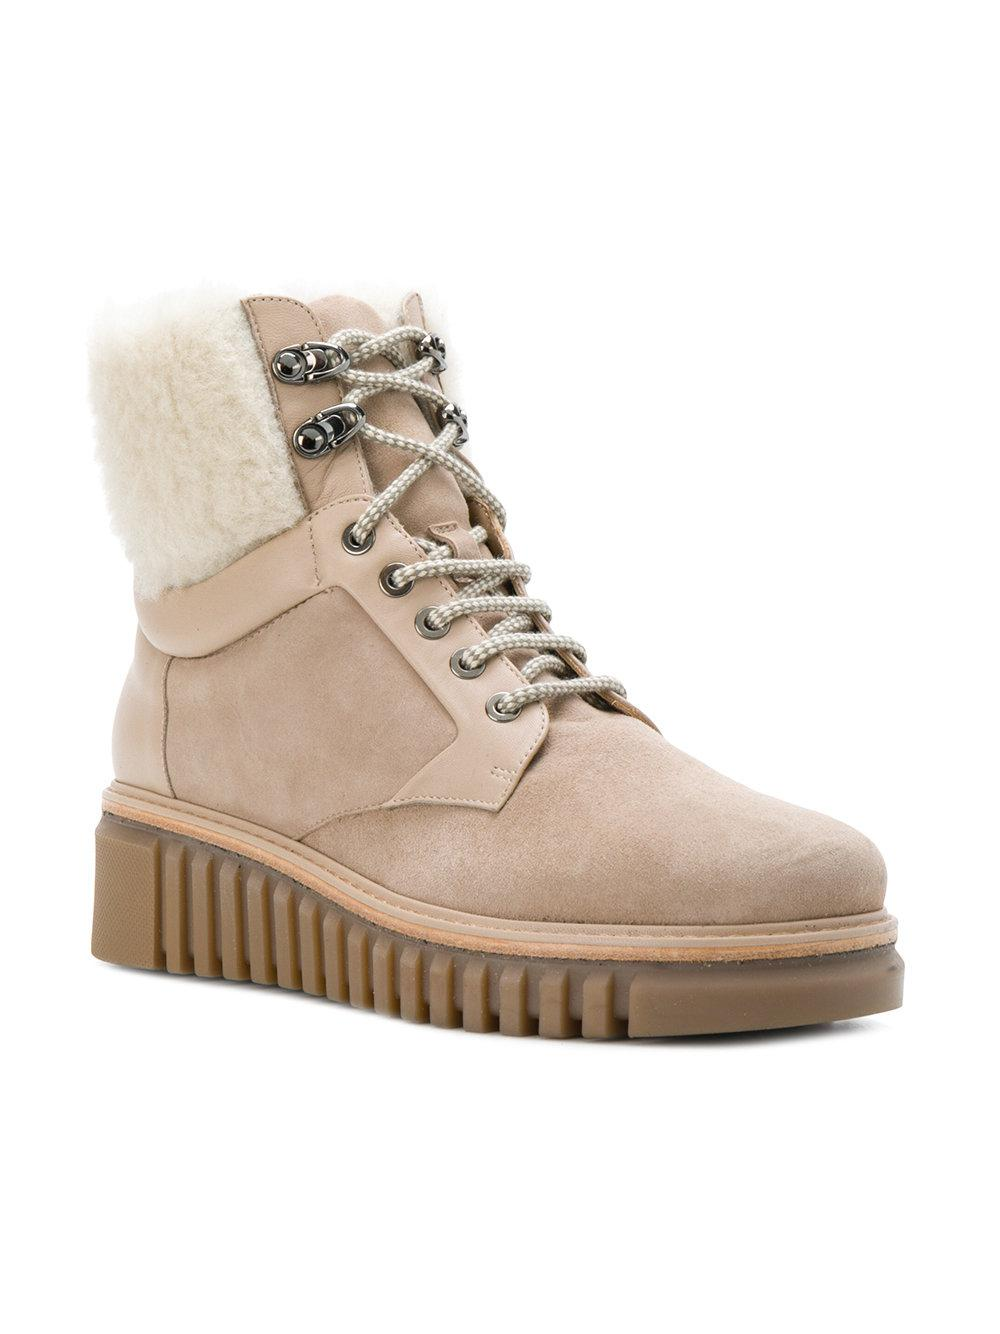 Loriblu Leather And Fur Trim Ankle Boots in Natural